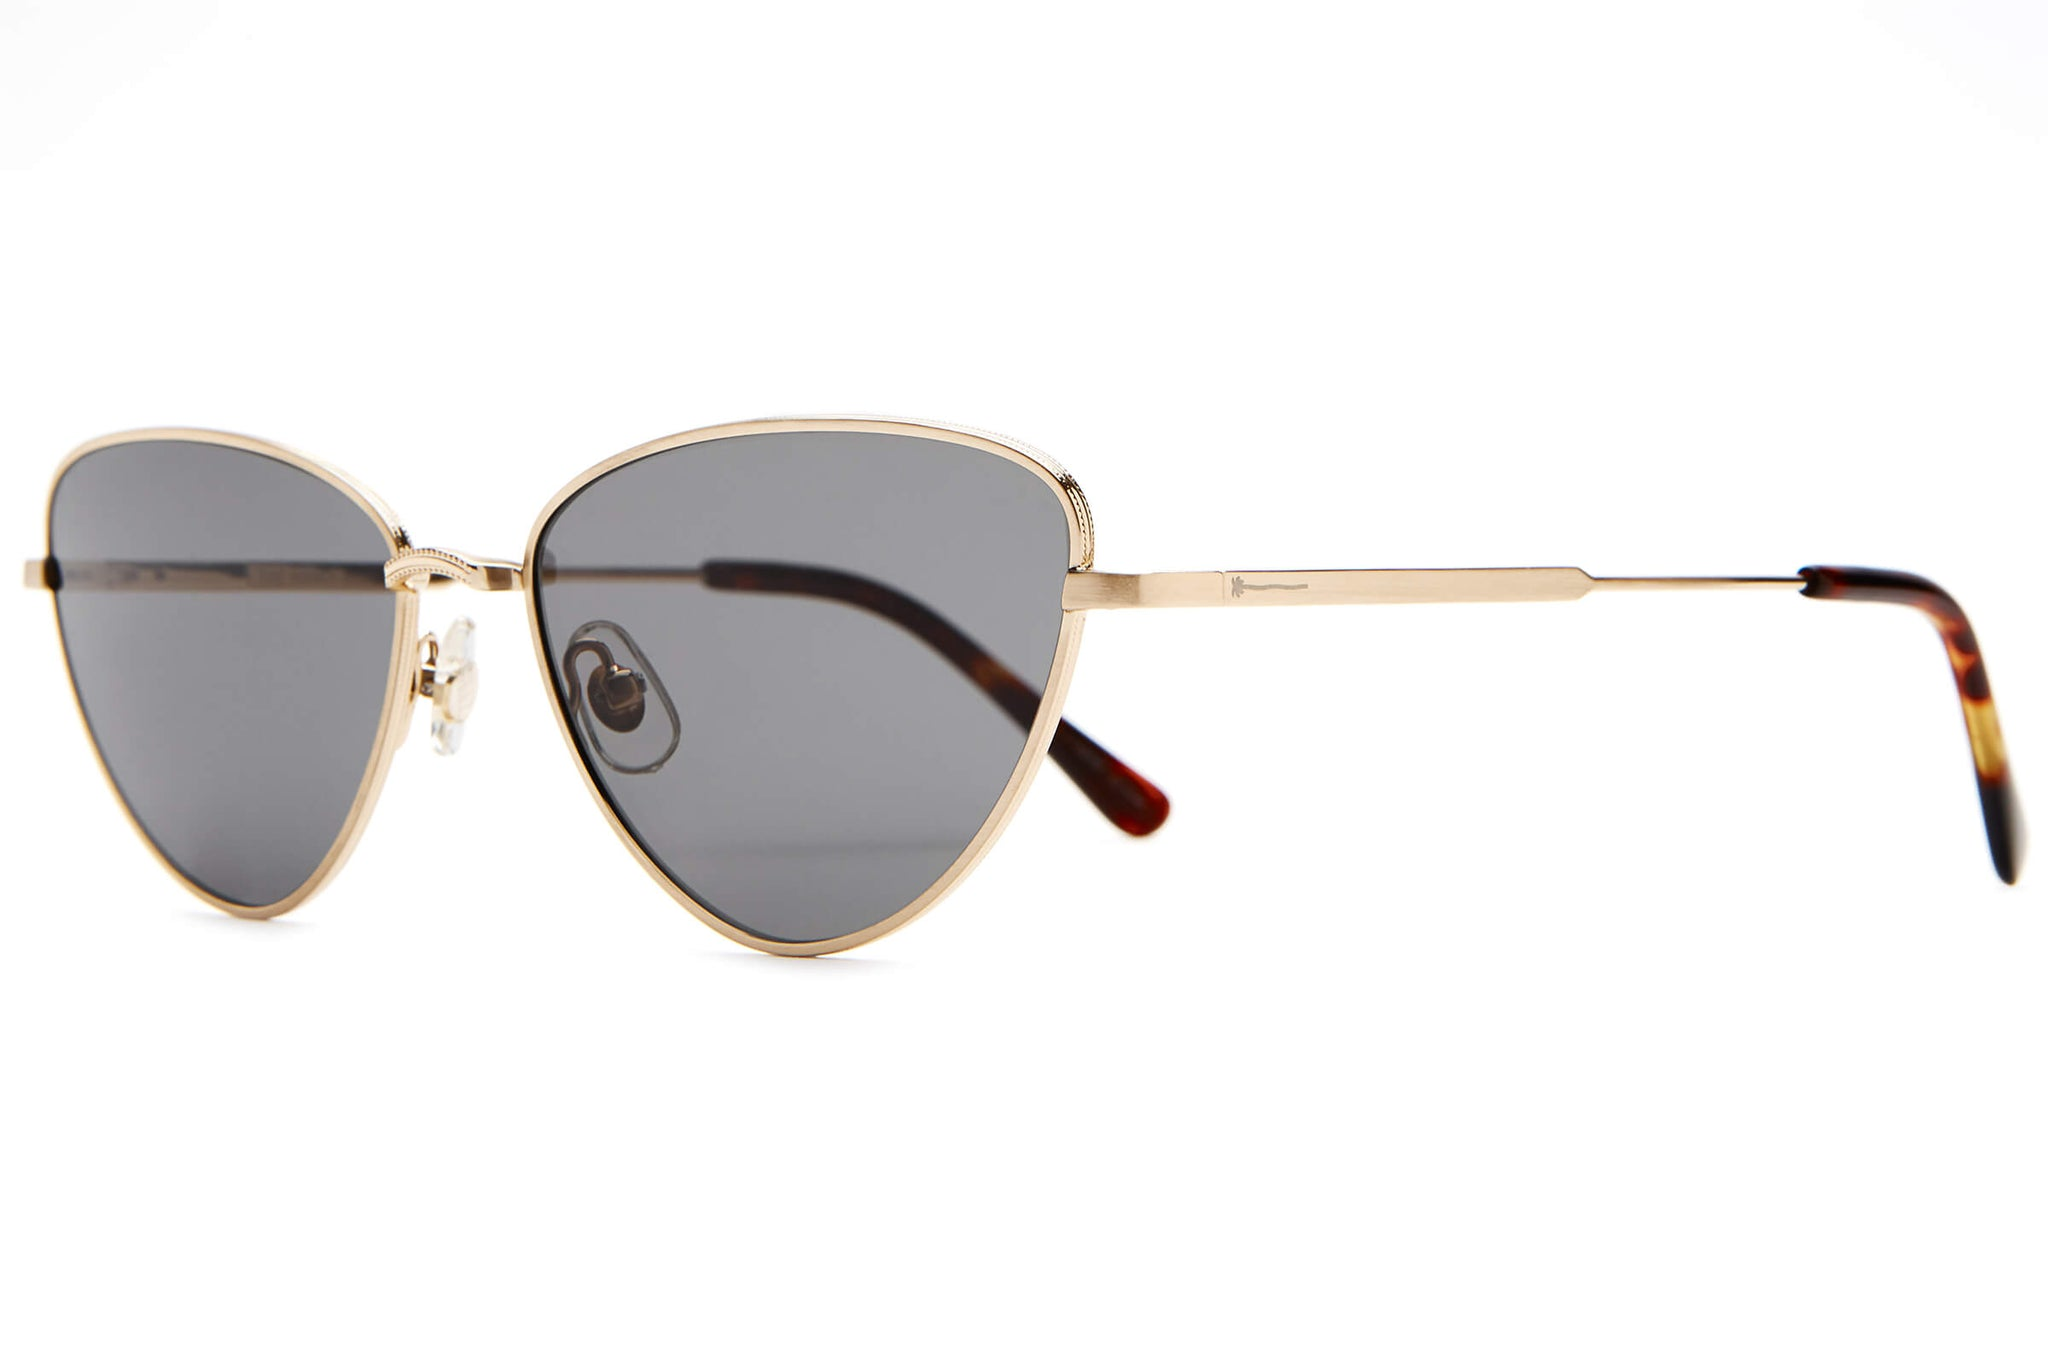 The Honey Buzz - Brushed Gold & Dark Tortoise - / Polarized Grey - Sunglasses